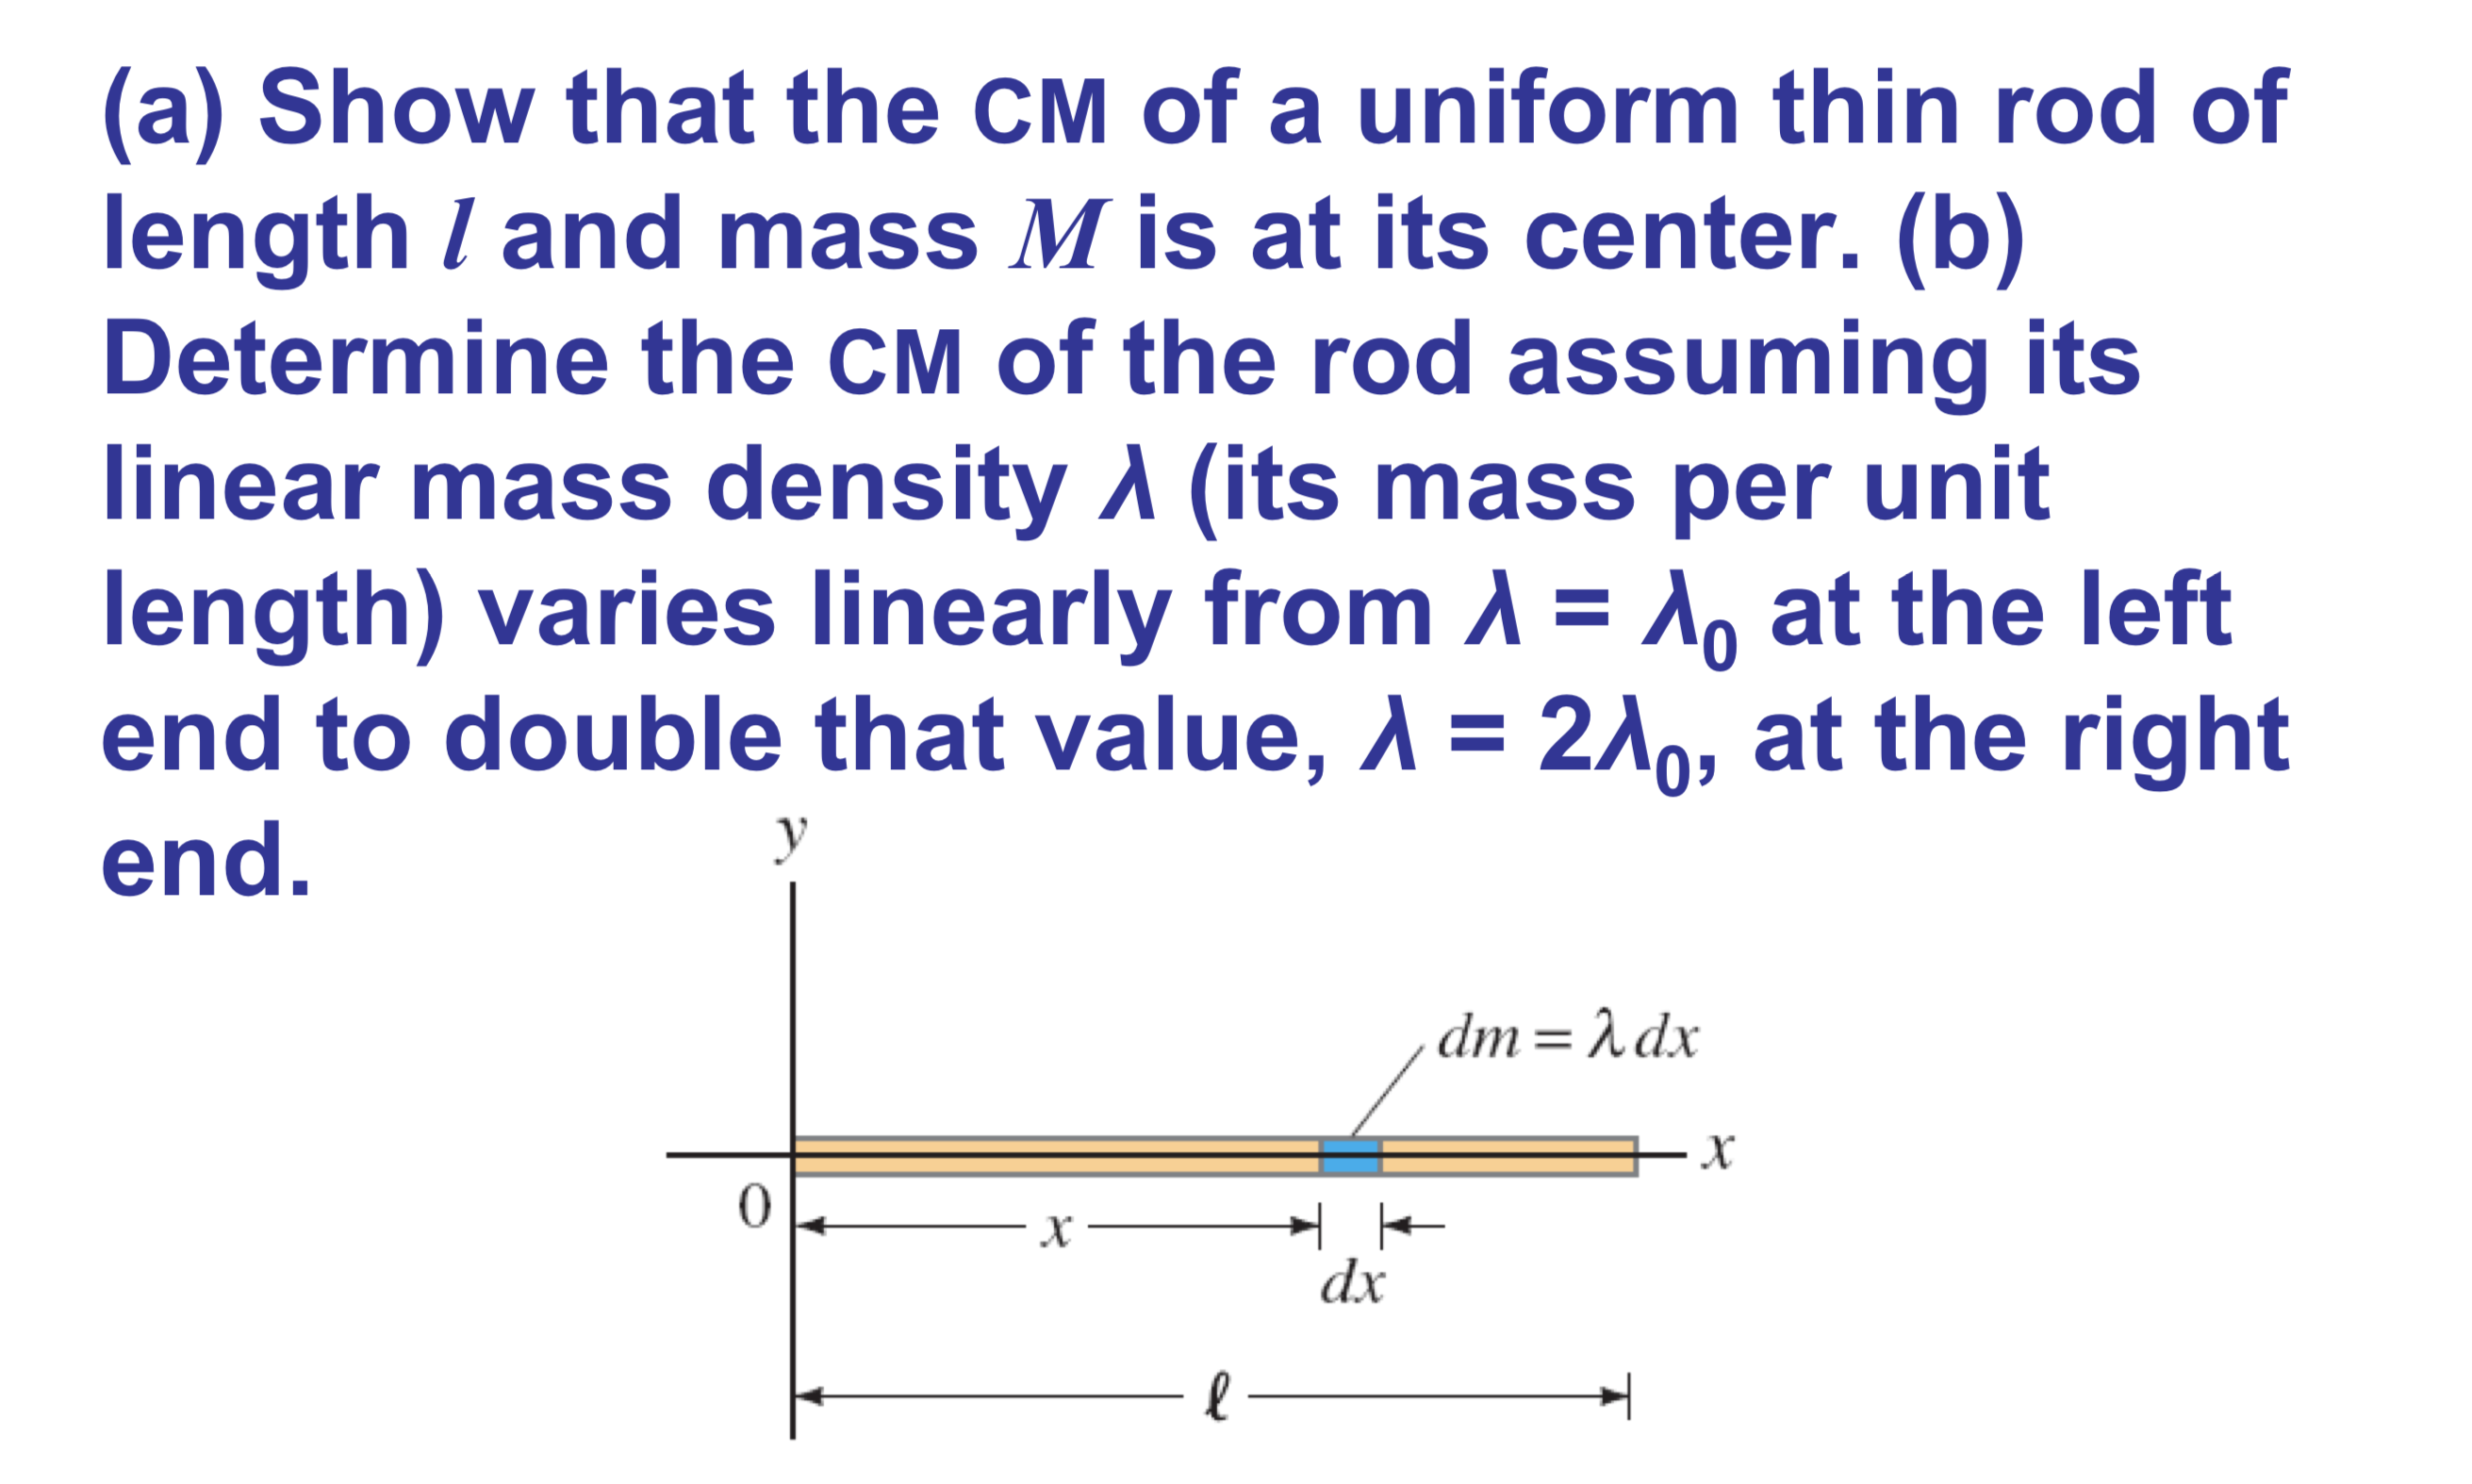 (a) Show that the CM of a uniform thin rod of length / and mass M is at its center. (b) Determine the CM of the rod assuming its linear mass density A (its mass per unit length) varies linearly from A = at the left end to double that value, A = 2A0, at the right y end. dm λdx X 0 х dx